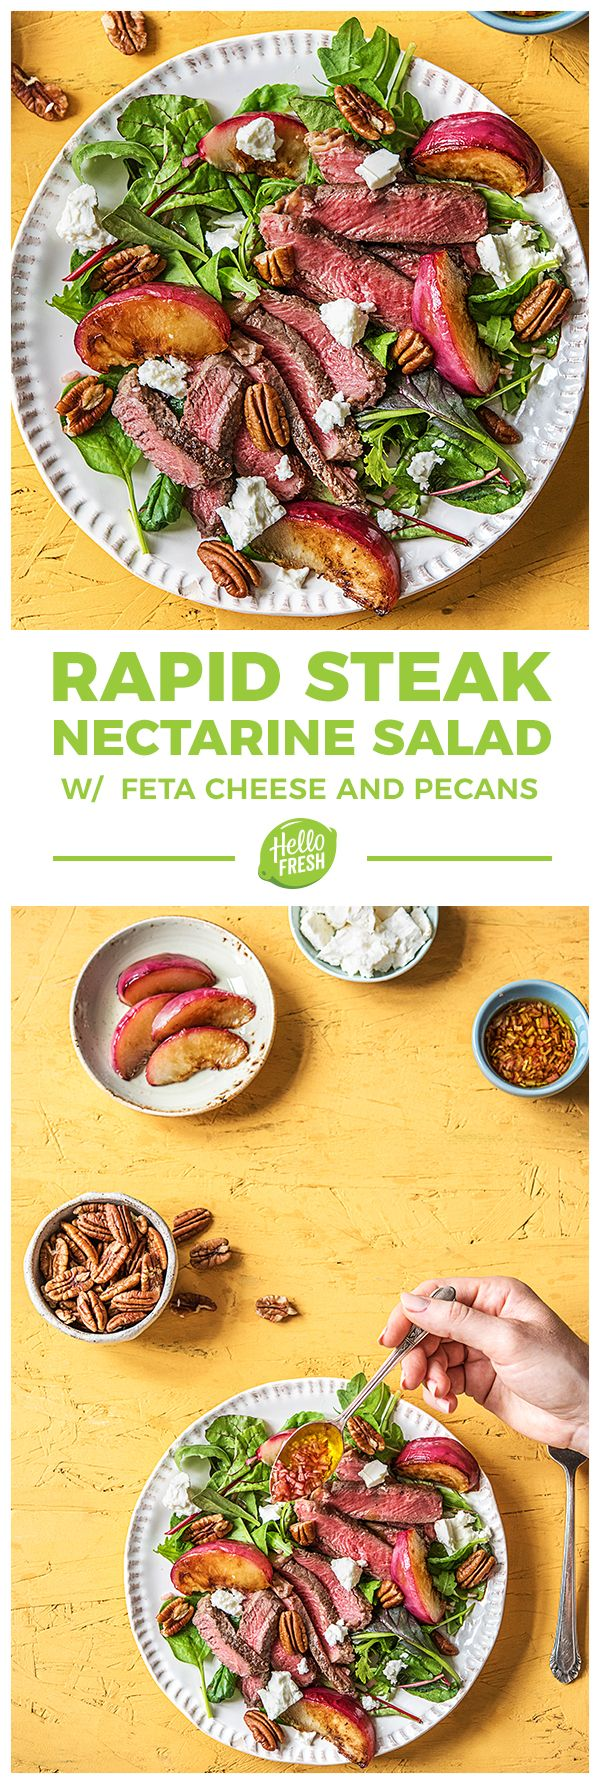 Easy Gluten-Free Steak and Nectarine Salad with Spring Mix, Pecans, and Feta Cheese | More healthy recipes on hellofresh.com